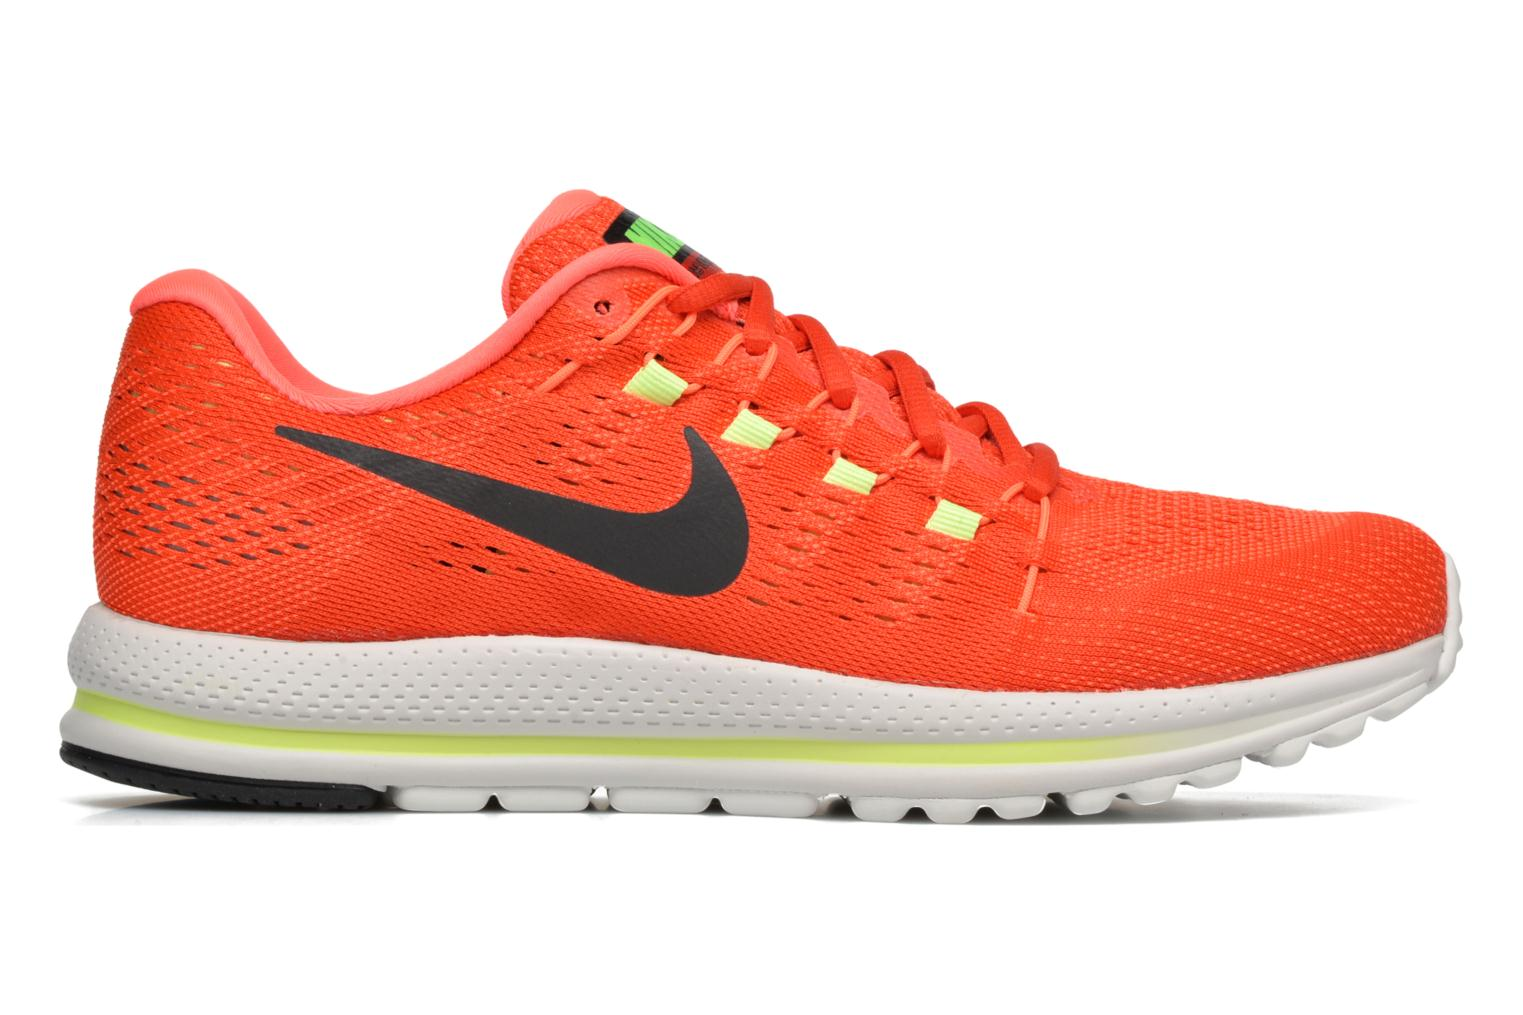 Nike Air Zoom Vomero 12 Max Orange/Black-Hyper Orange